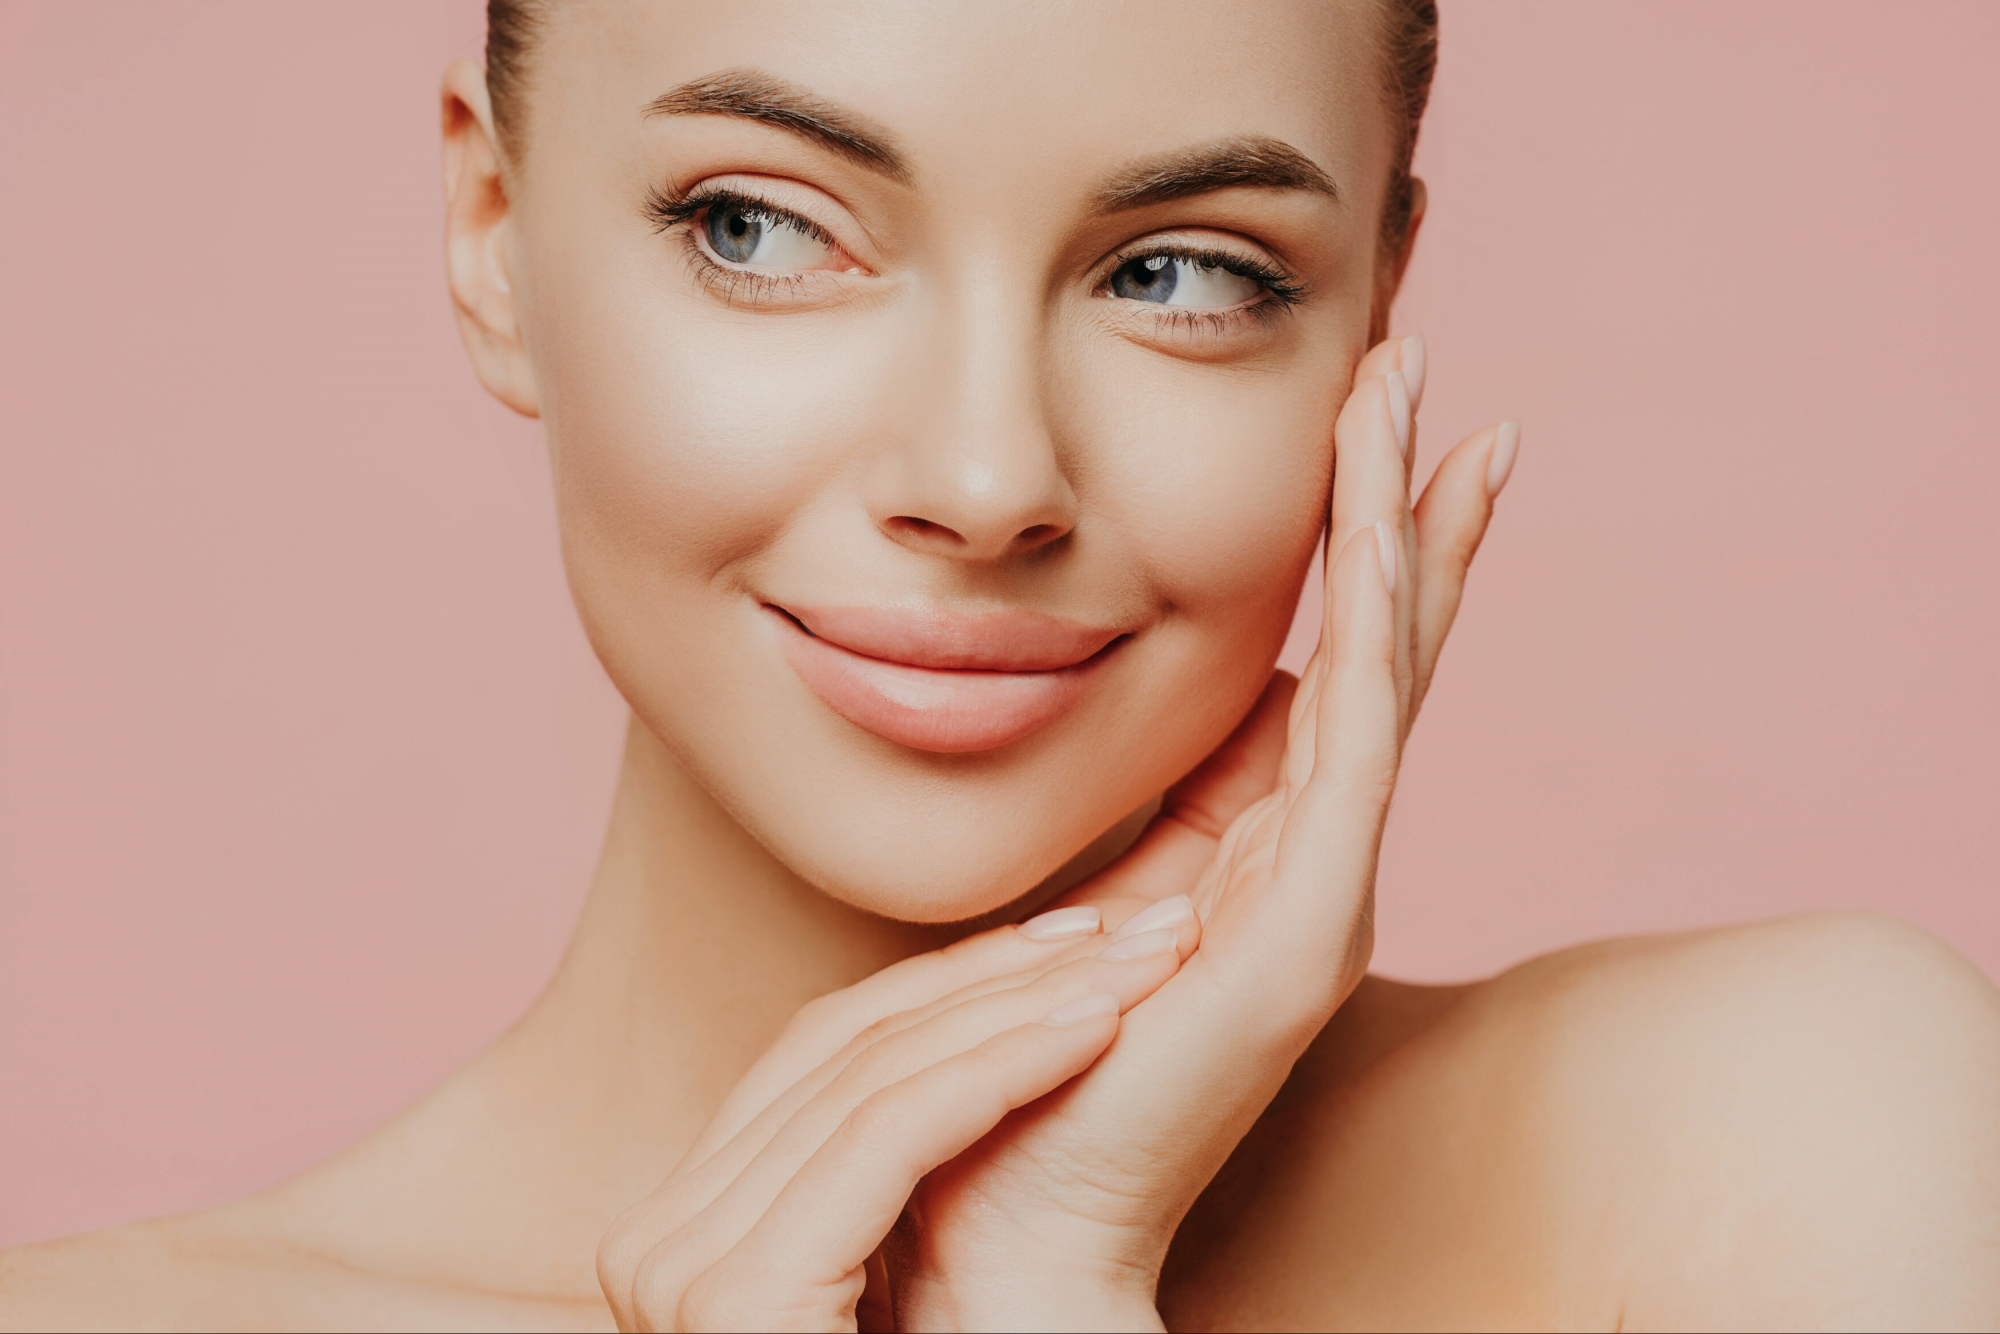 5 Botox Alternatives To Try For Younger-Looking Skin